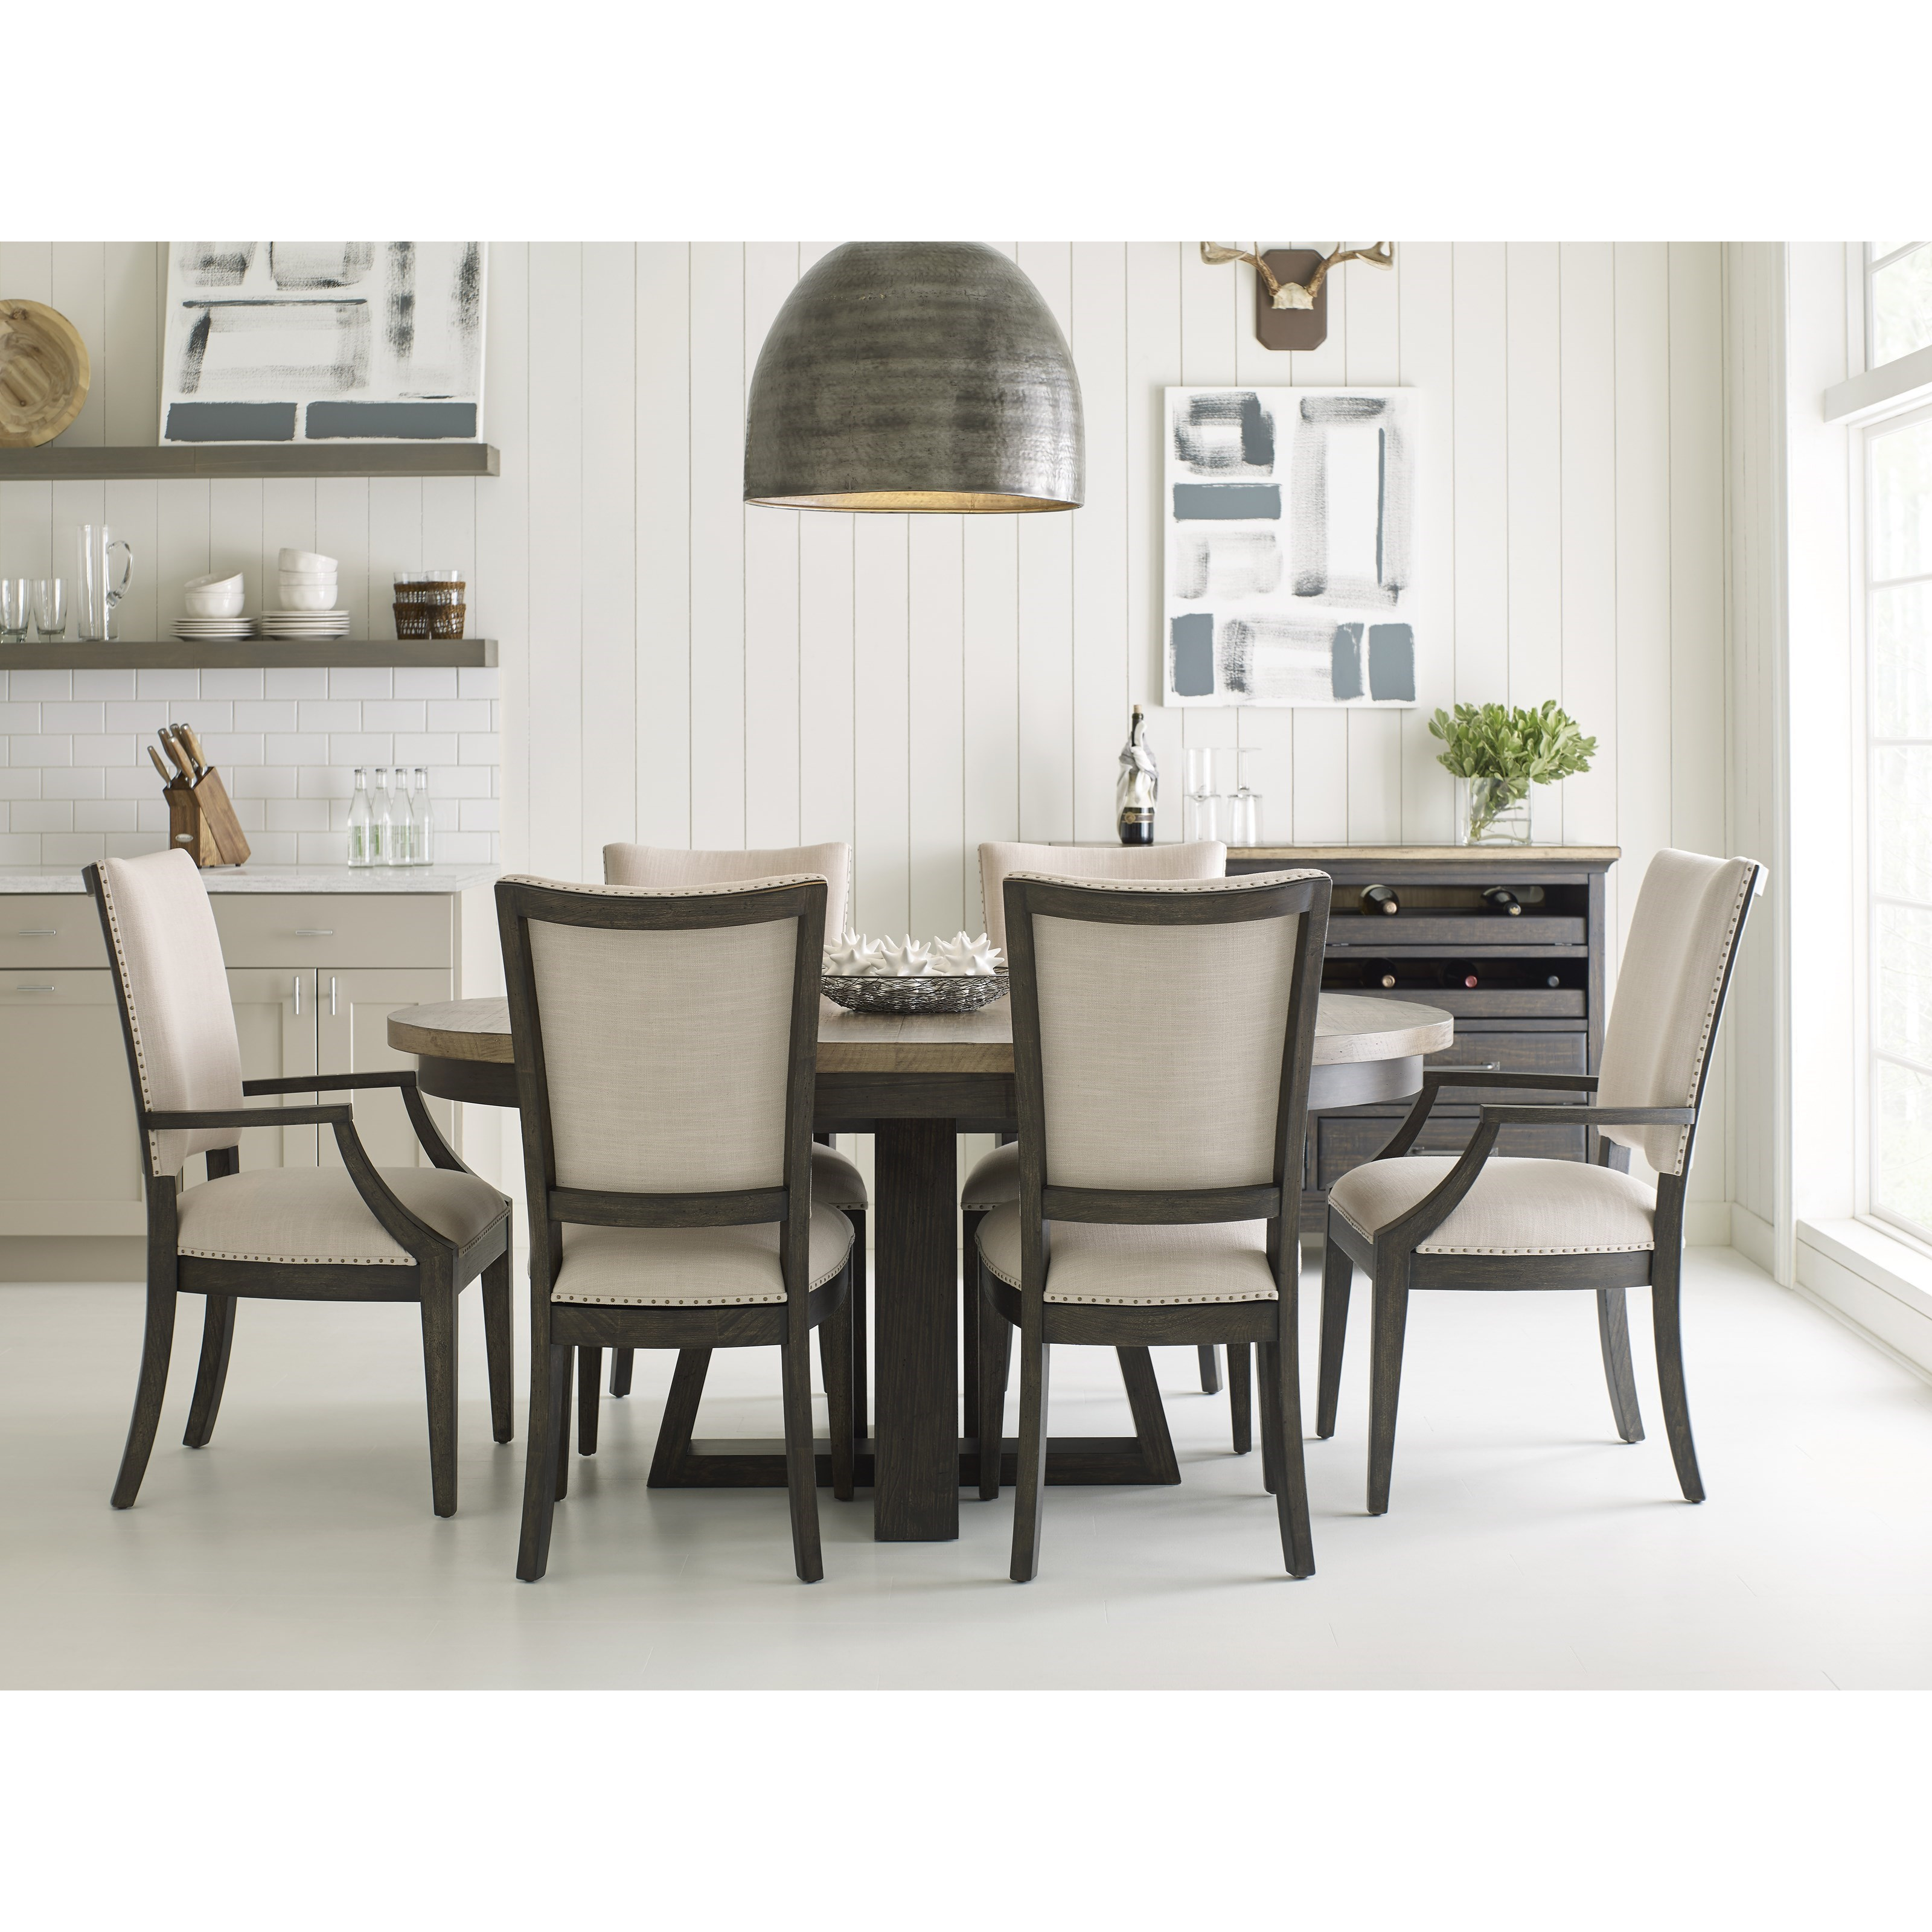 Plank Road Formal Dining Room Group at Stoney Creek Furniture